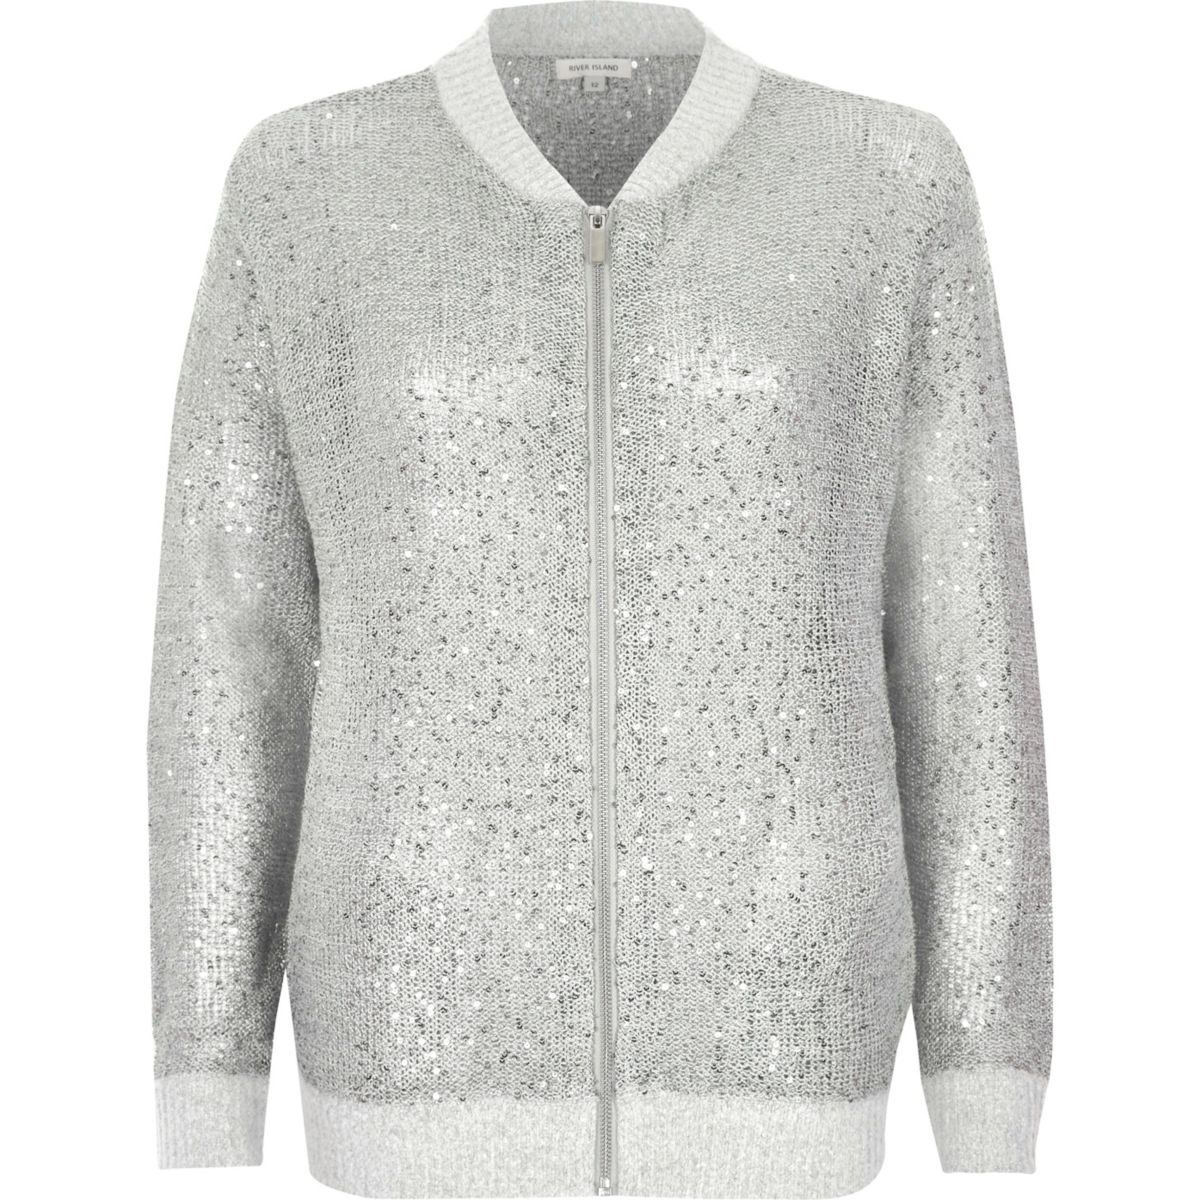 Silver sequin embellished knit bomber jacket - Knitwear - Sale - women